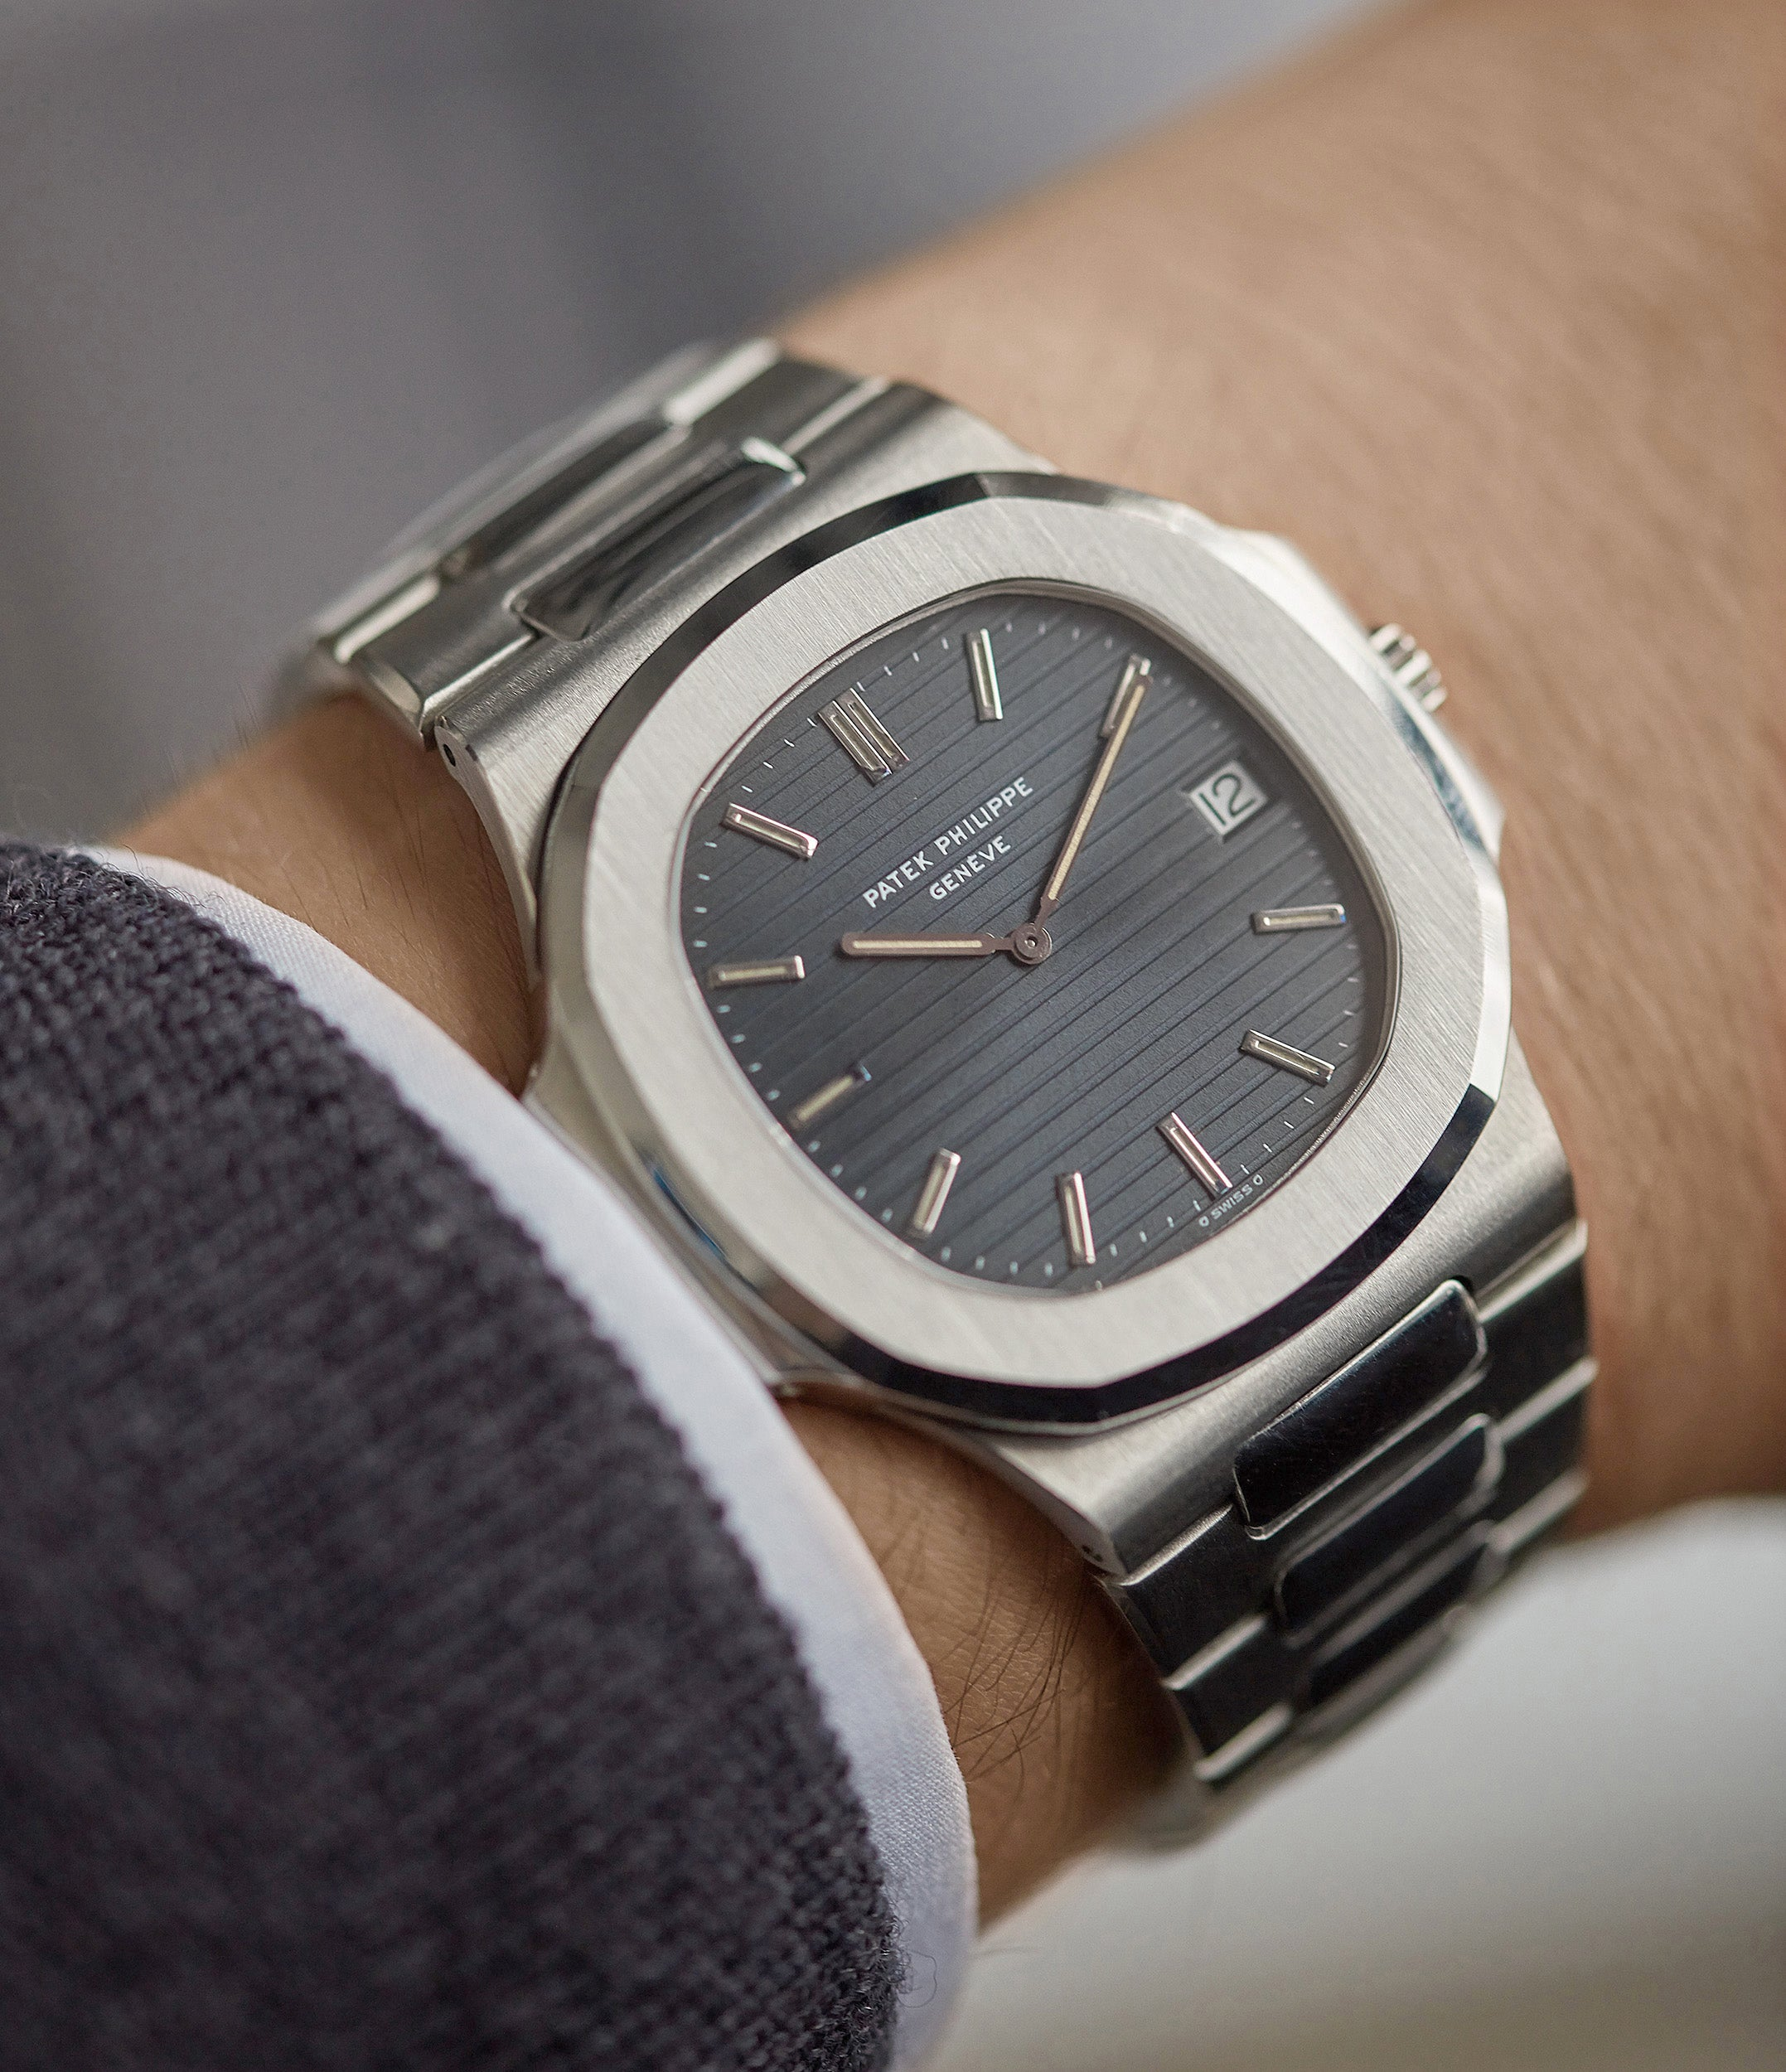 hands-on with Patek Philippe Nautilus 3700/001 full set sport watch for sale online at A Collected Man London UK specialist of rare watches